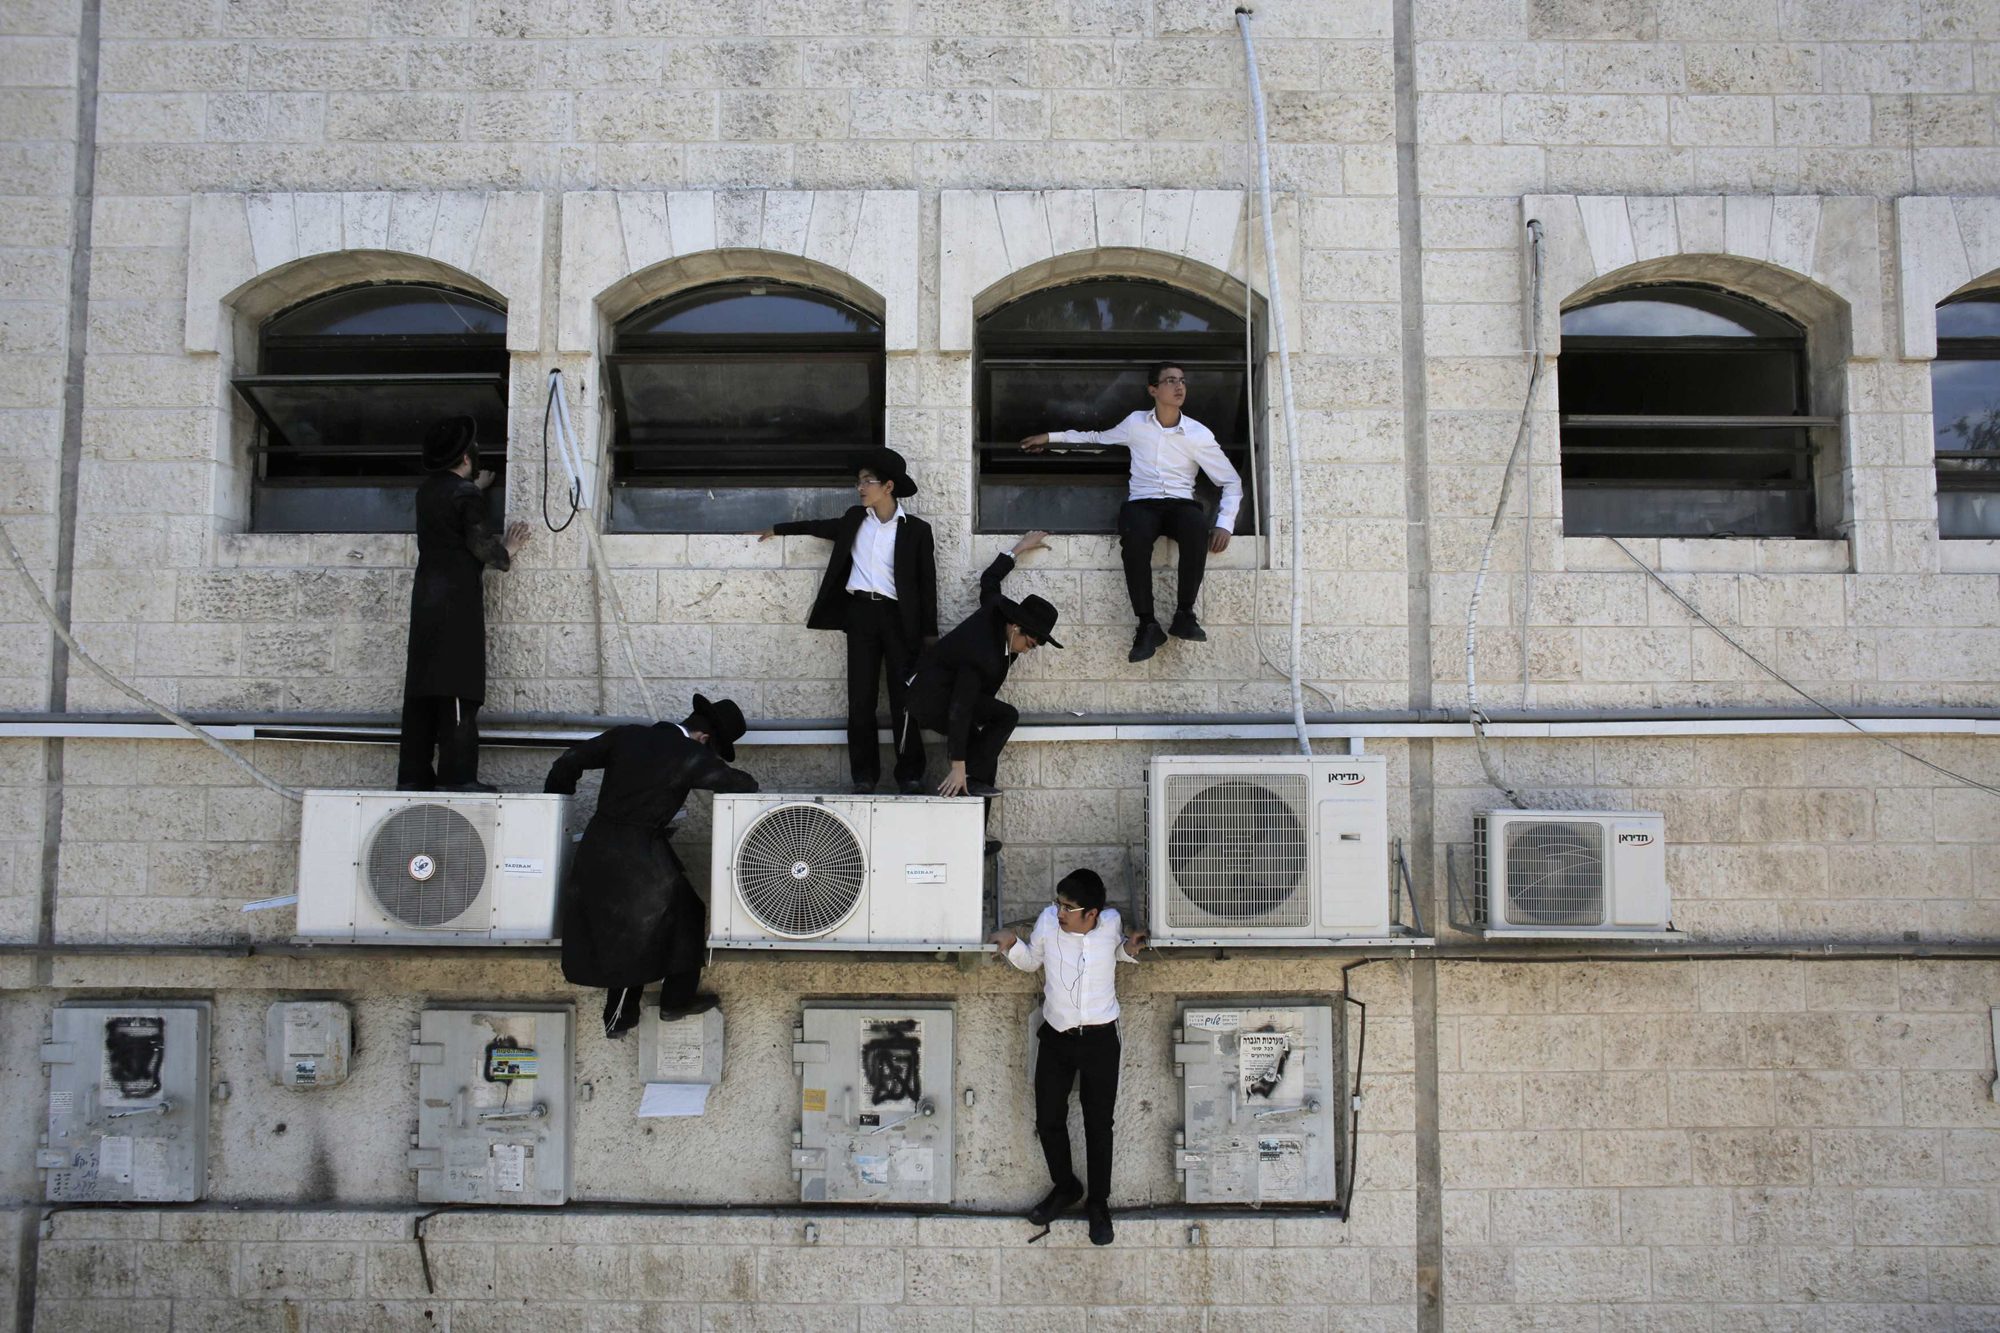 Ultra-Orthodox Jewish boys climb down a wall near the scene of a suspected attack in Jerusalem, Aug. 4, 2014.